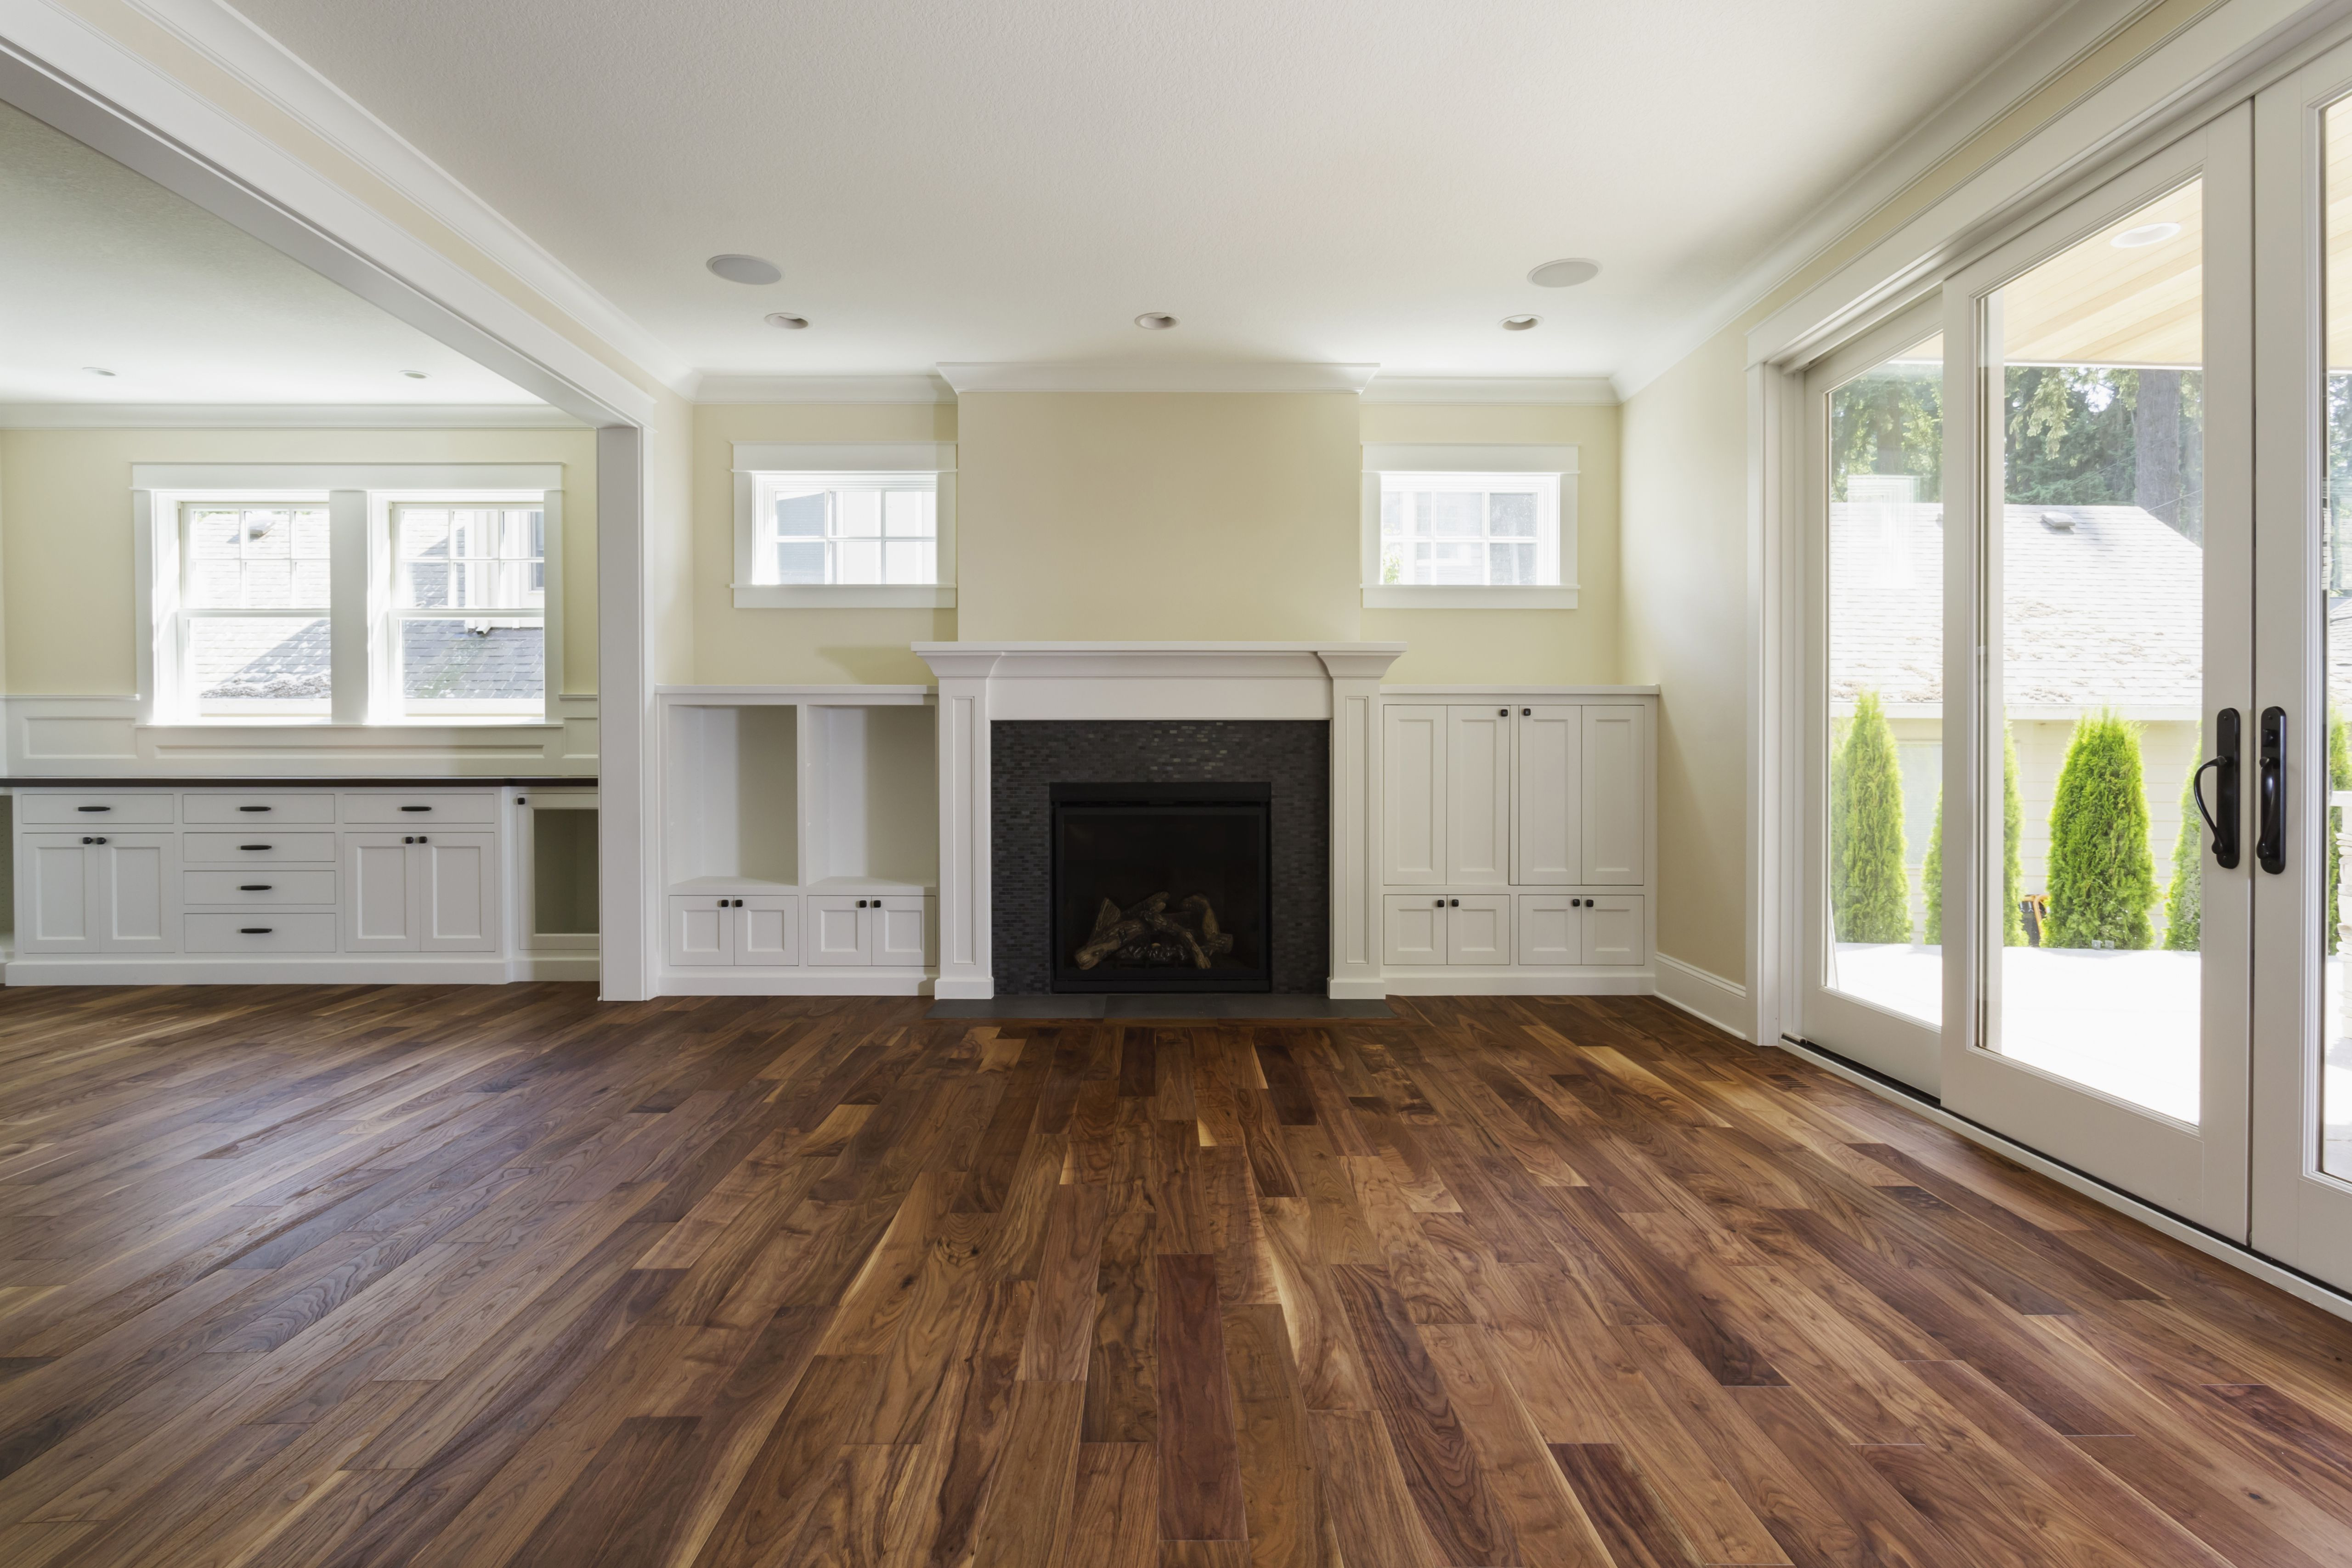 solid oak hardwood flooring prices of the pros and cons of prefinished hardwood flooring for fireplace and built in shelves in living room 482143011 57bef8e33df78cc16e035397